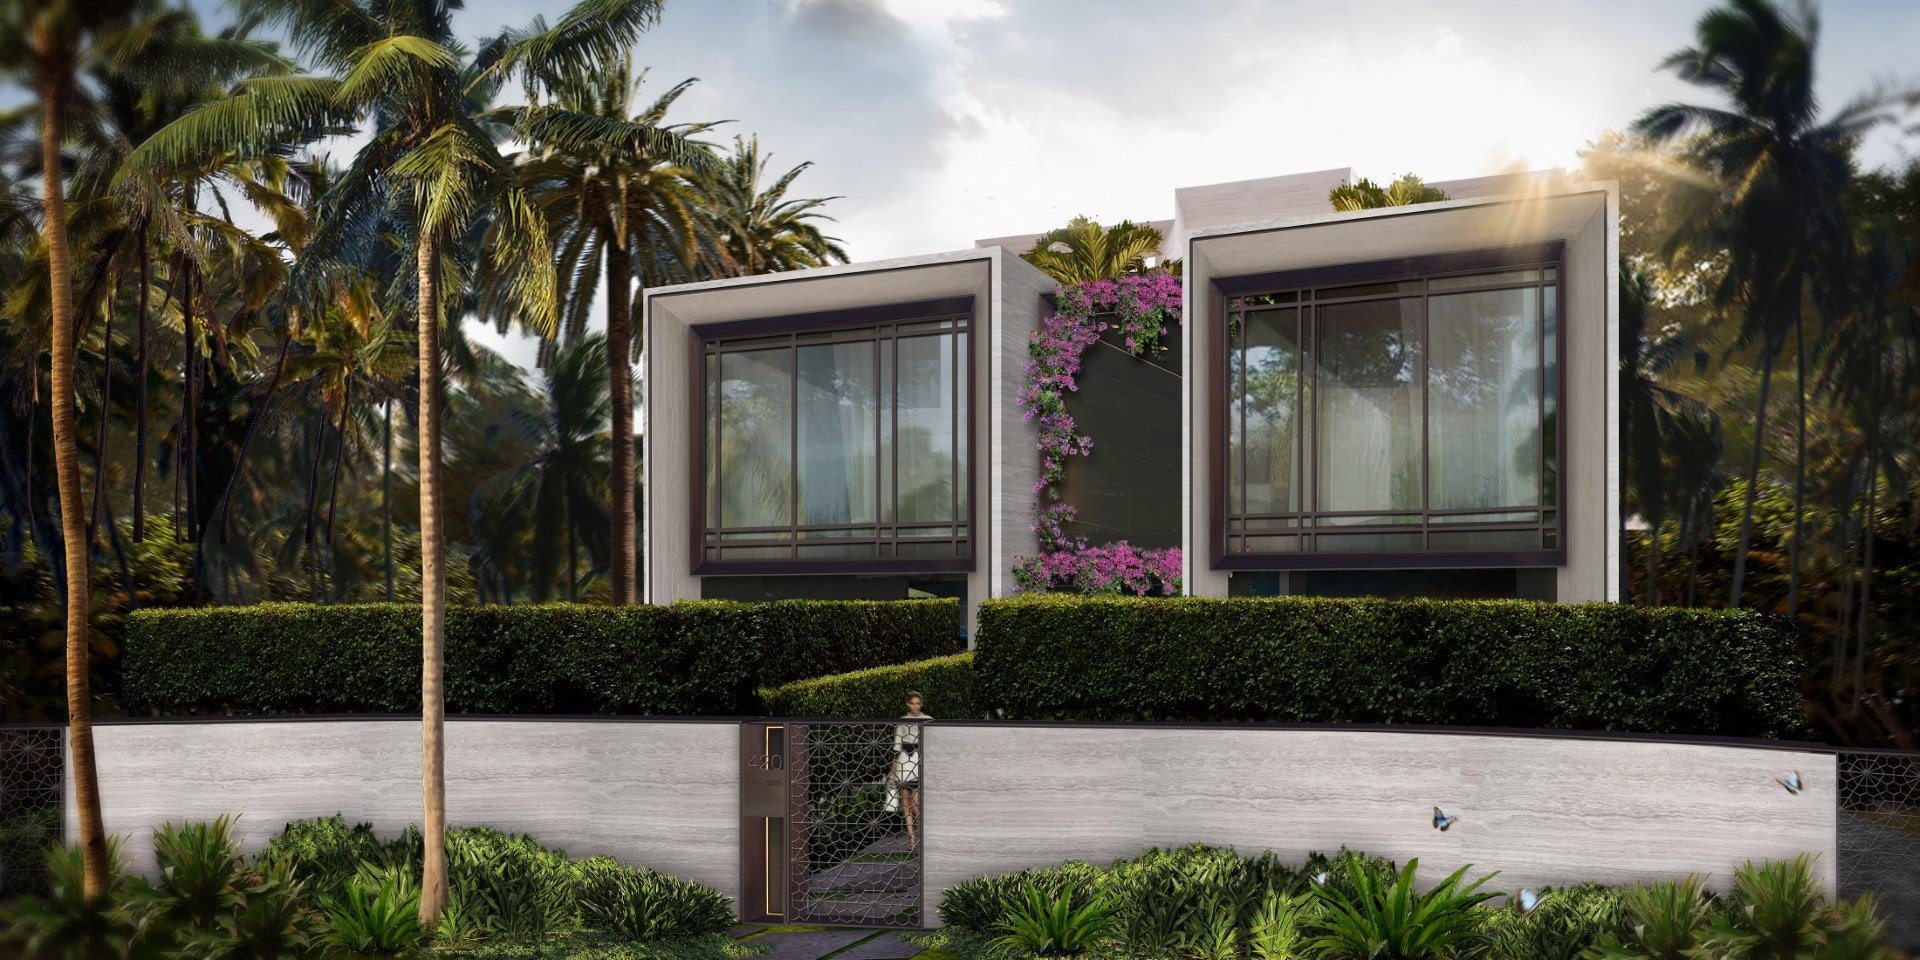 New Tropical Modern Residence Planned On Hibiscus Island Lot Recently Sold By Moishe Mana